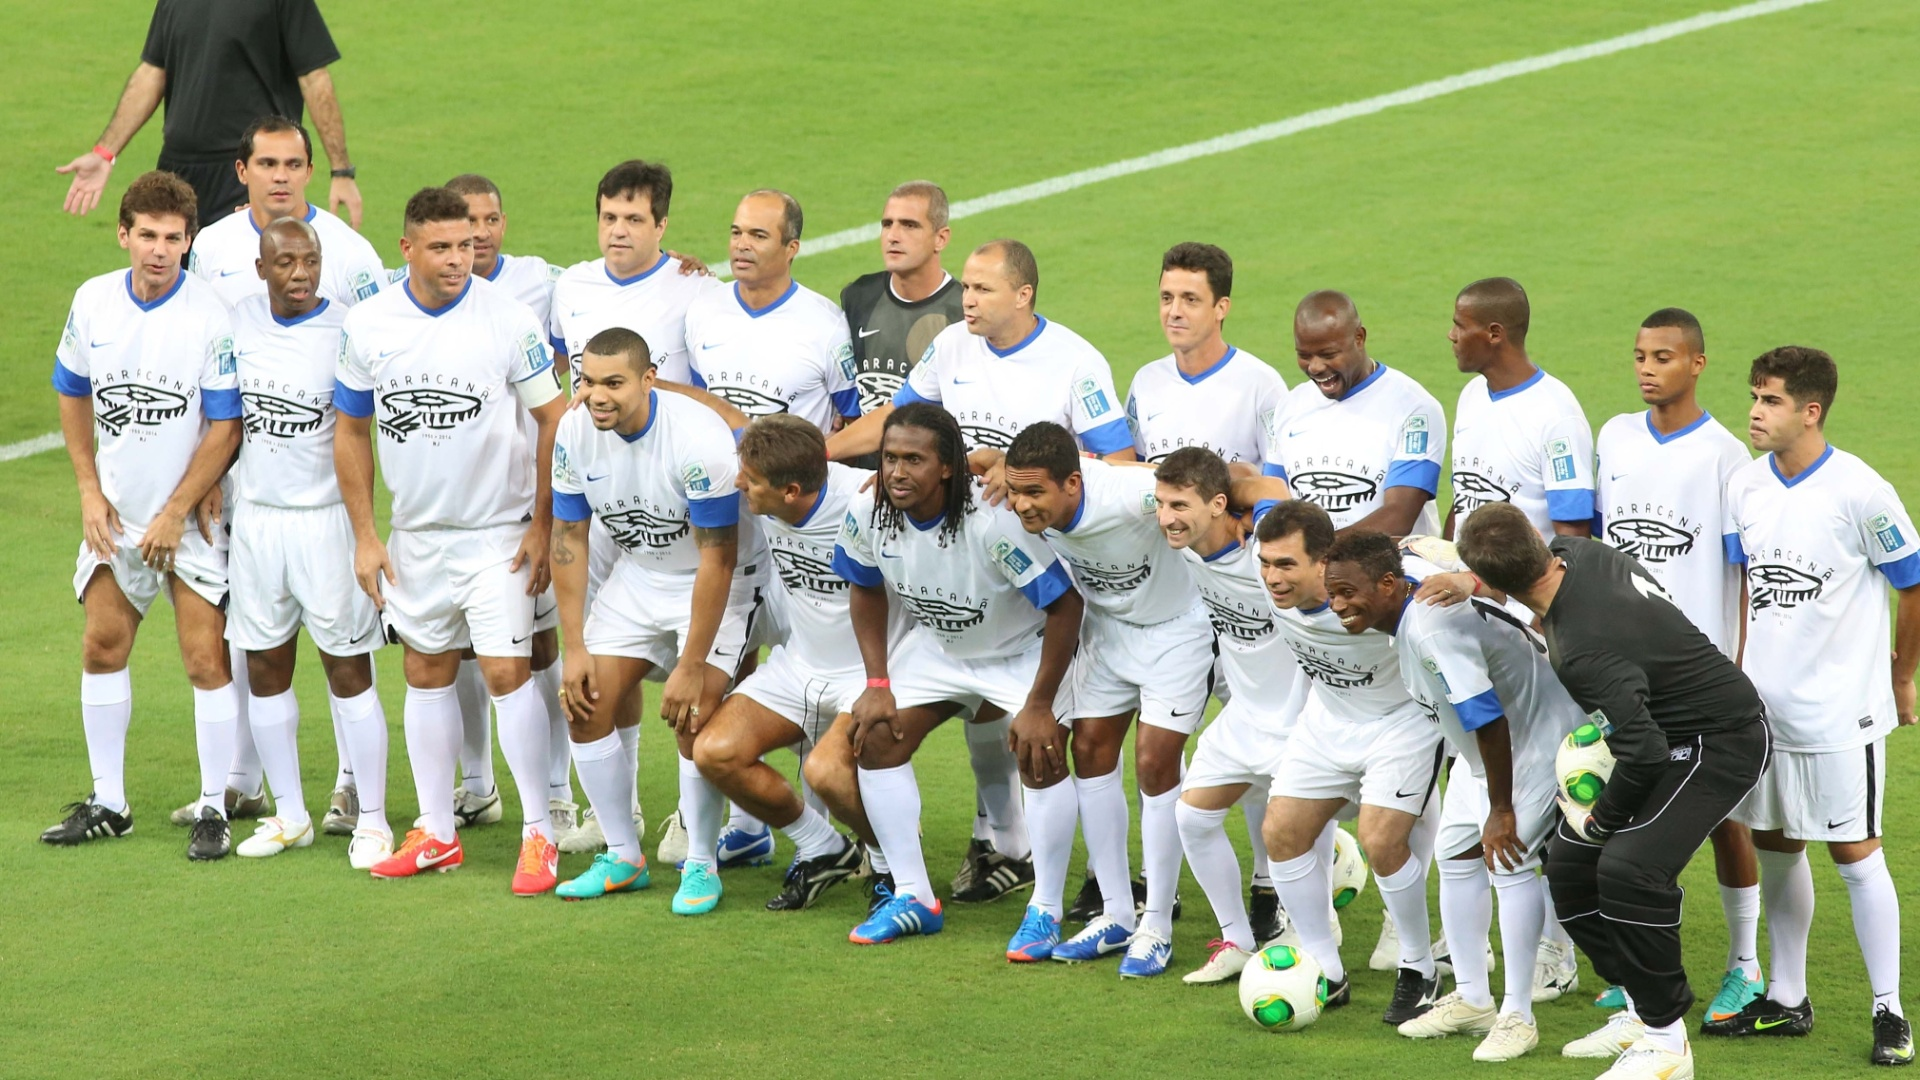 27.abr.2013 - Amigos de Ronaldo posam para foto antes do incio do jogo que serve como evento teste para a reabertura do Maracan